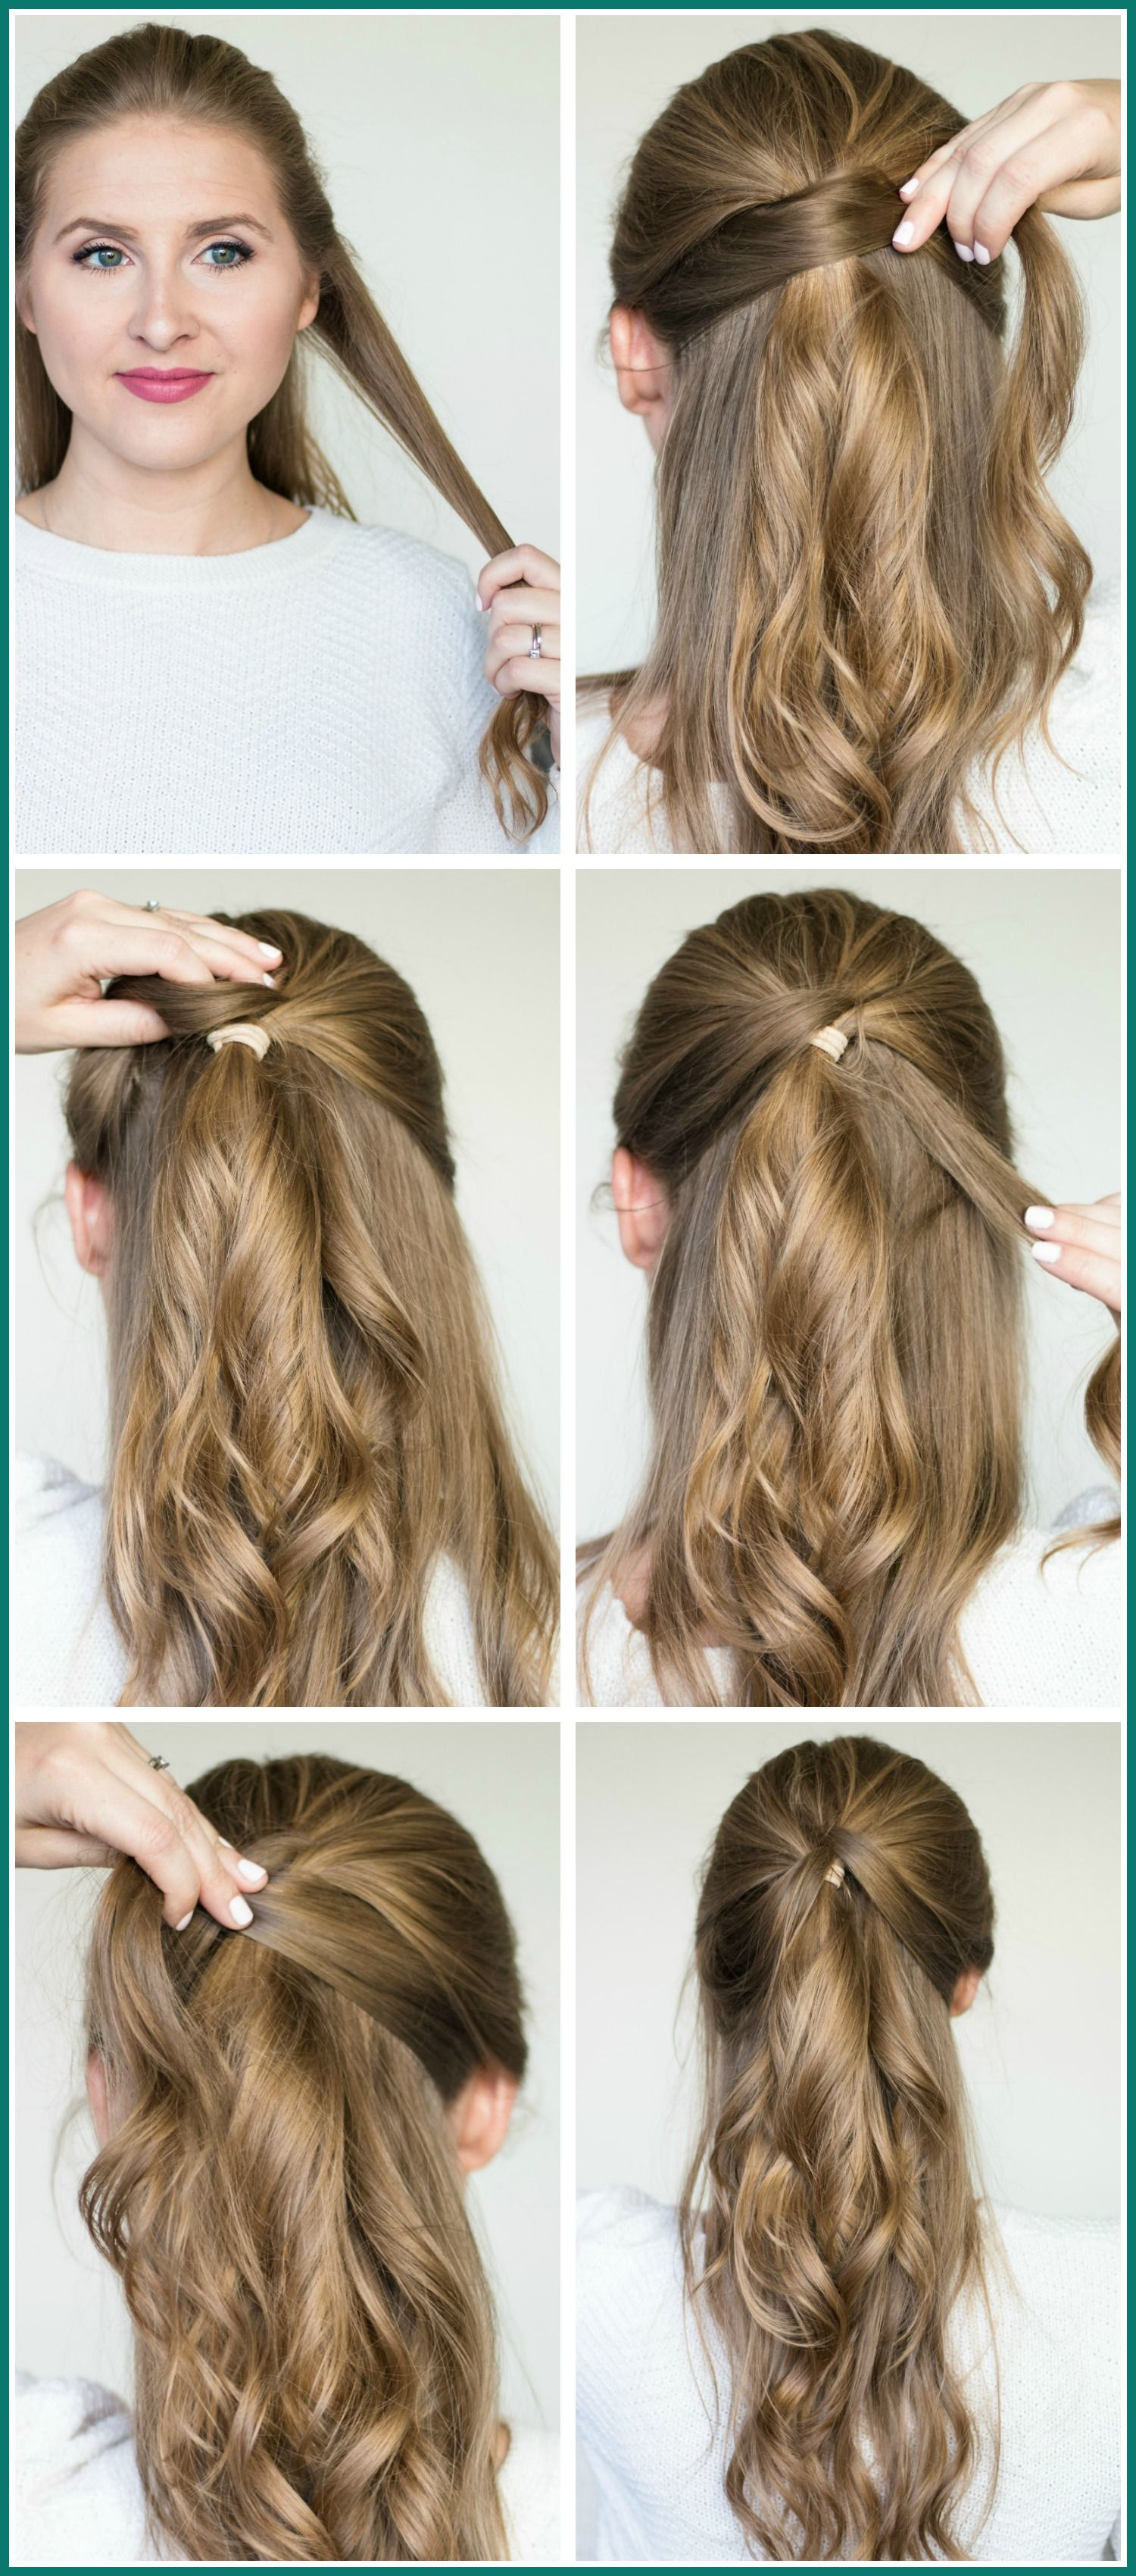 Easy Hairstyles Thin Hair Over 50 In 2020 Easy Party Hairstyles Party Hairstyles For Long Hair Easy Hairstyles For Long Hair